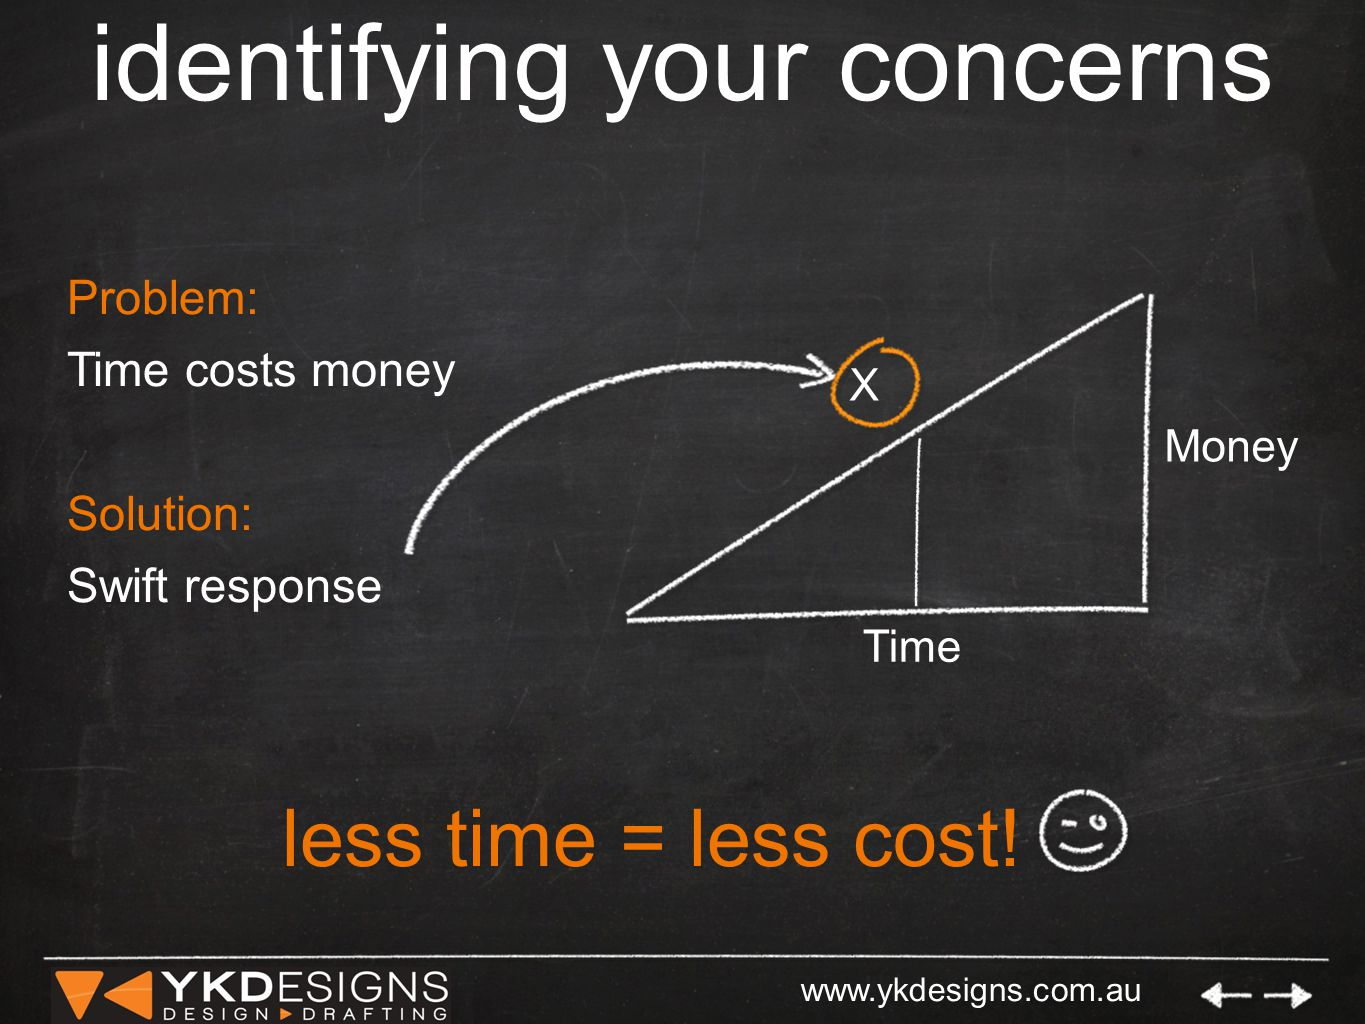 www.ykdesigns.com.au identifying your concerns Money Time X Problem: Time costs money Solution: Swift response less time = less cost!